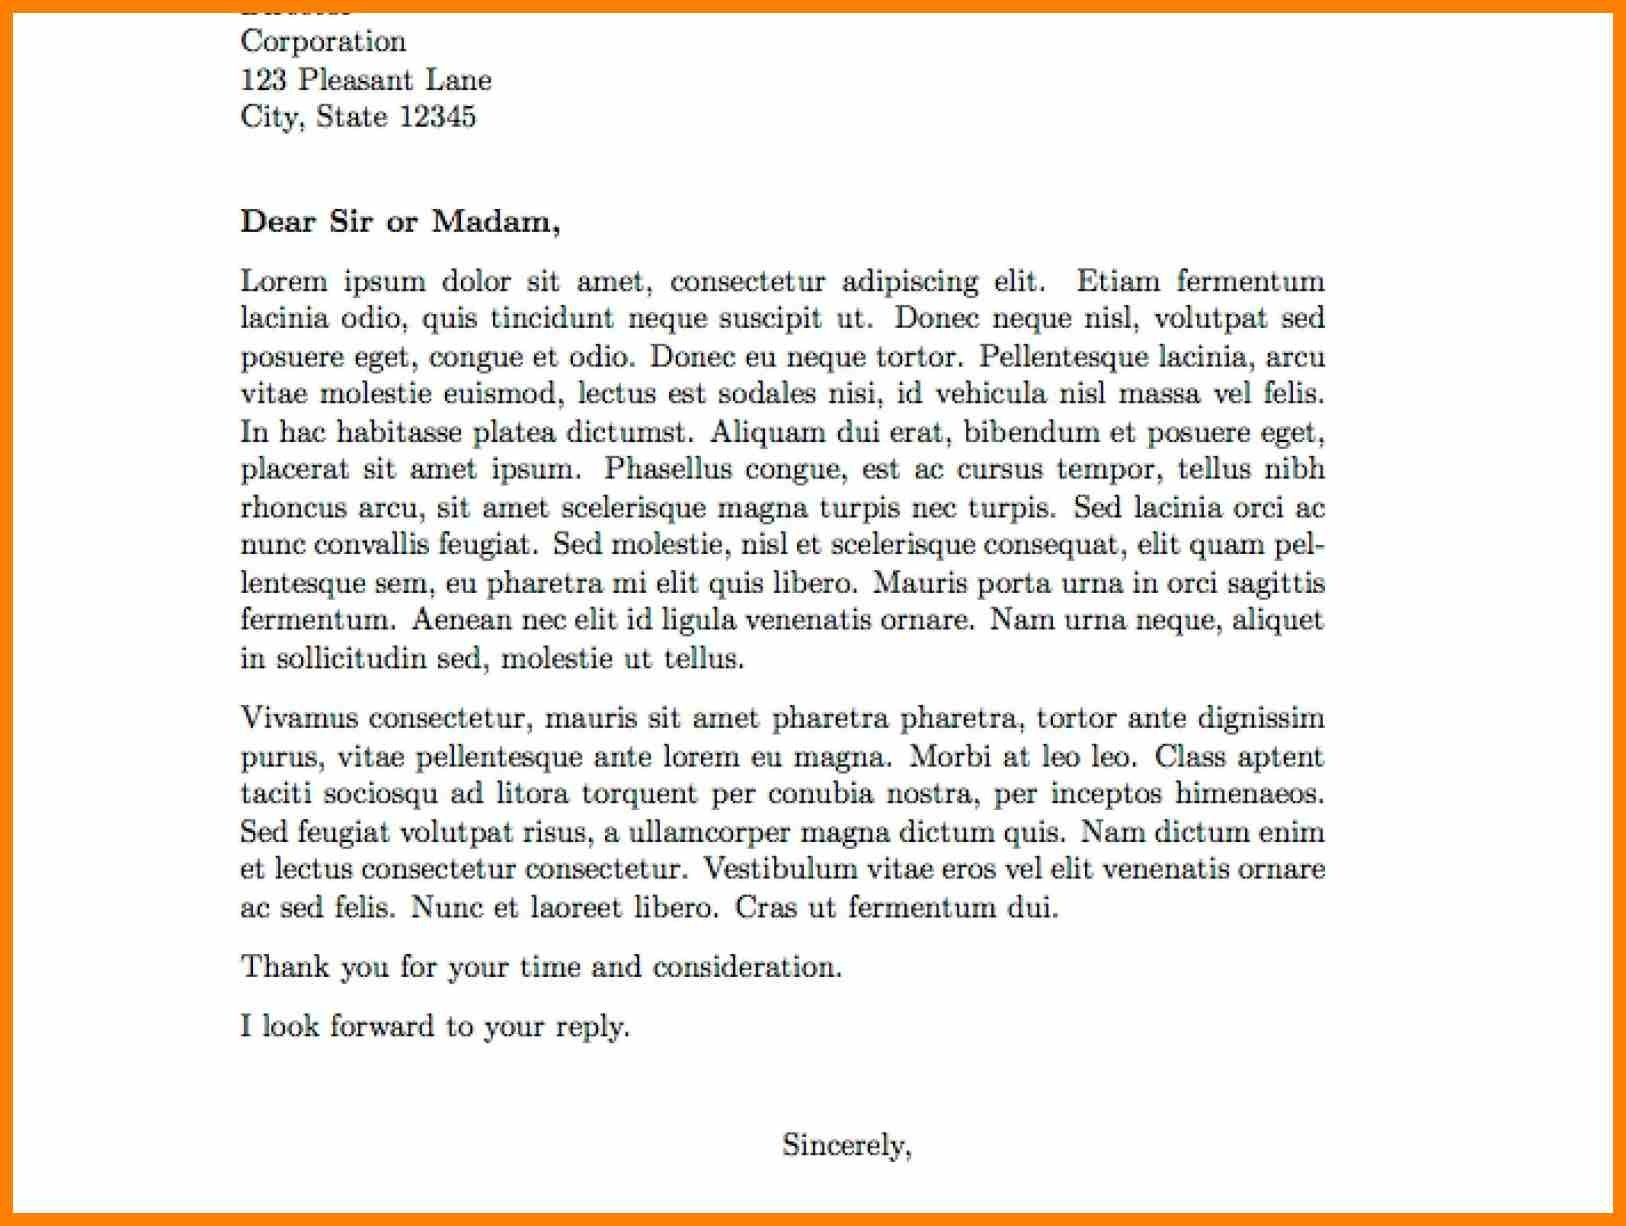 Mission Trip Letter Template - How to Write A Missionary Support Letter Choice Image Letter